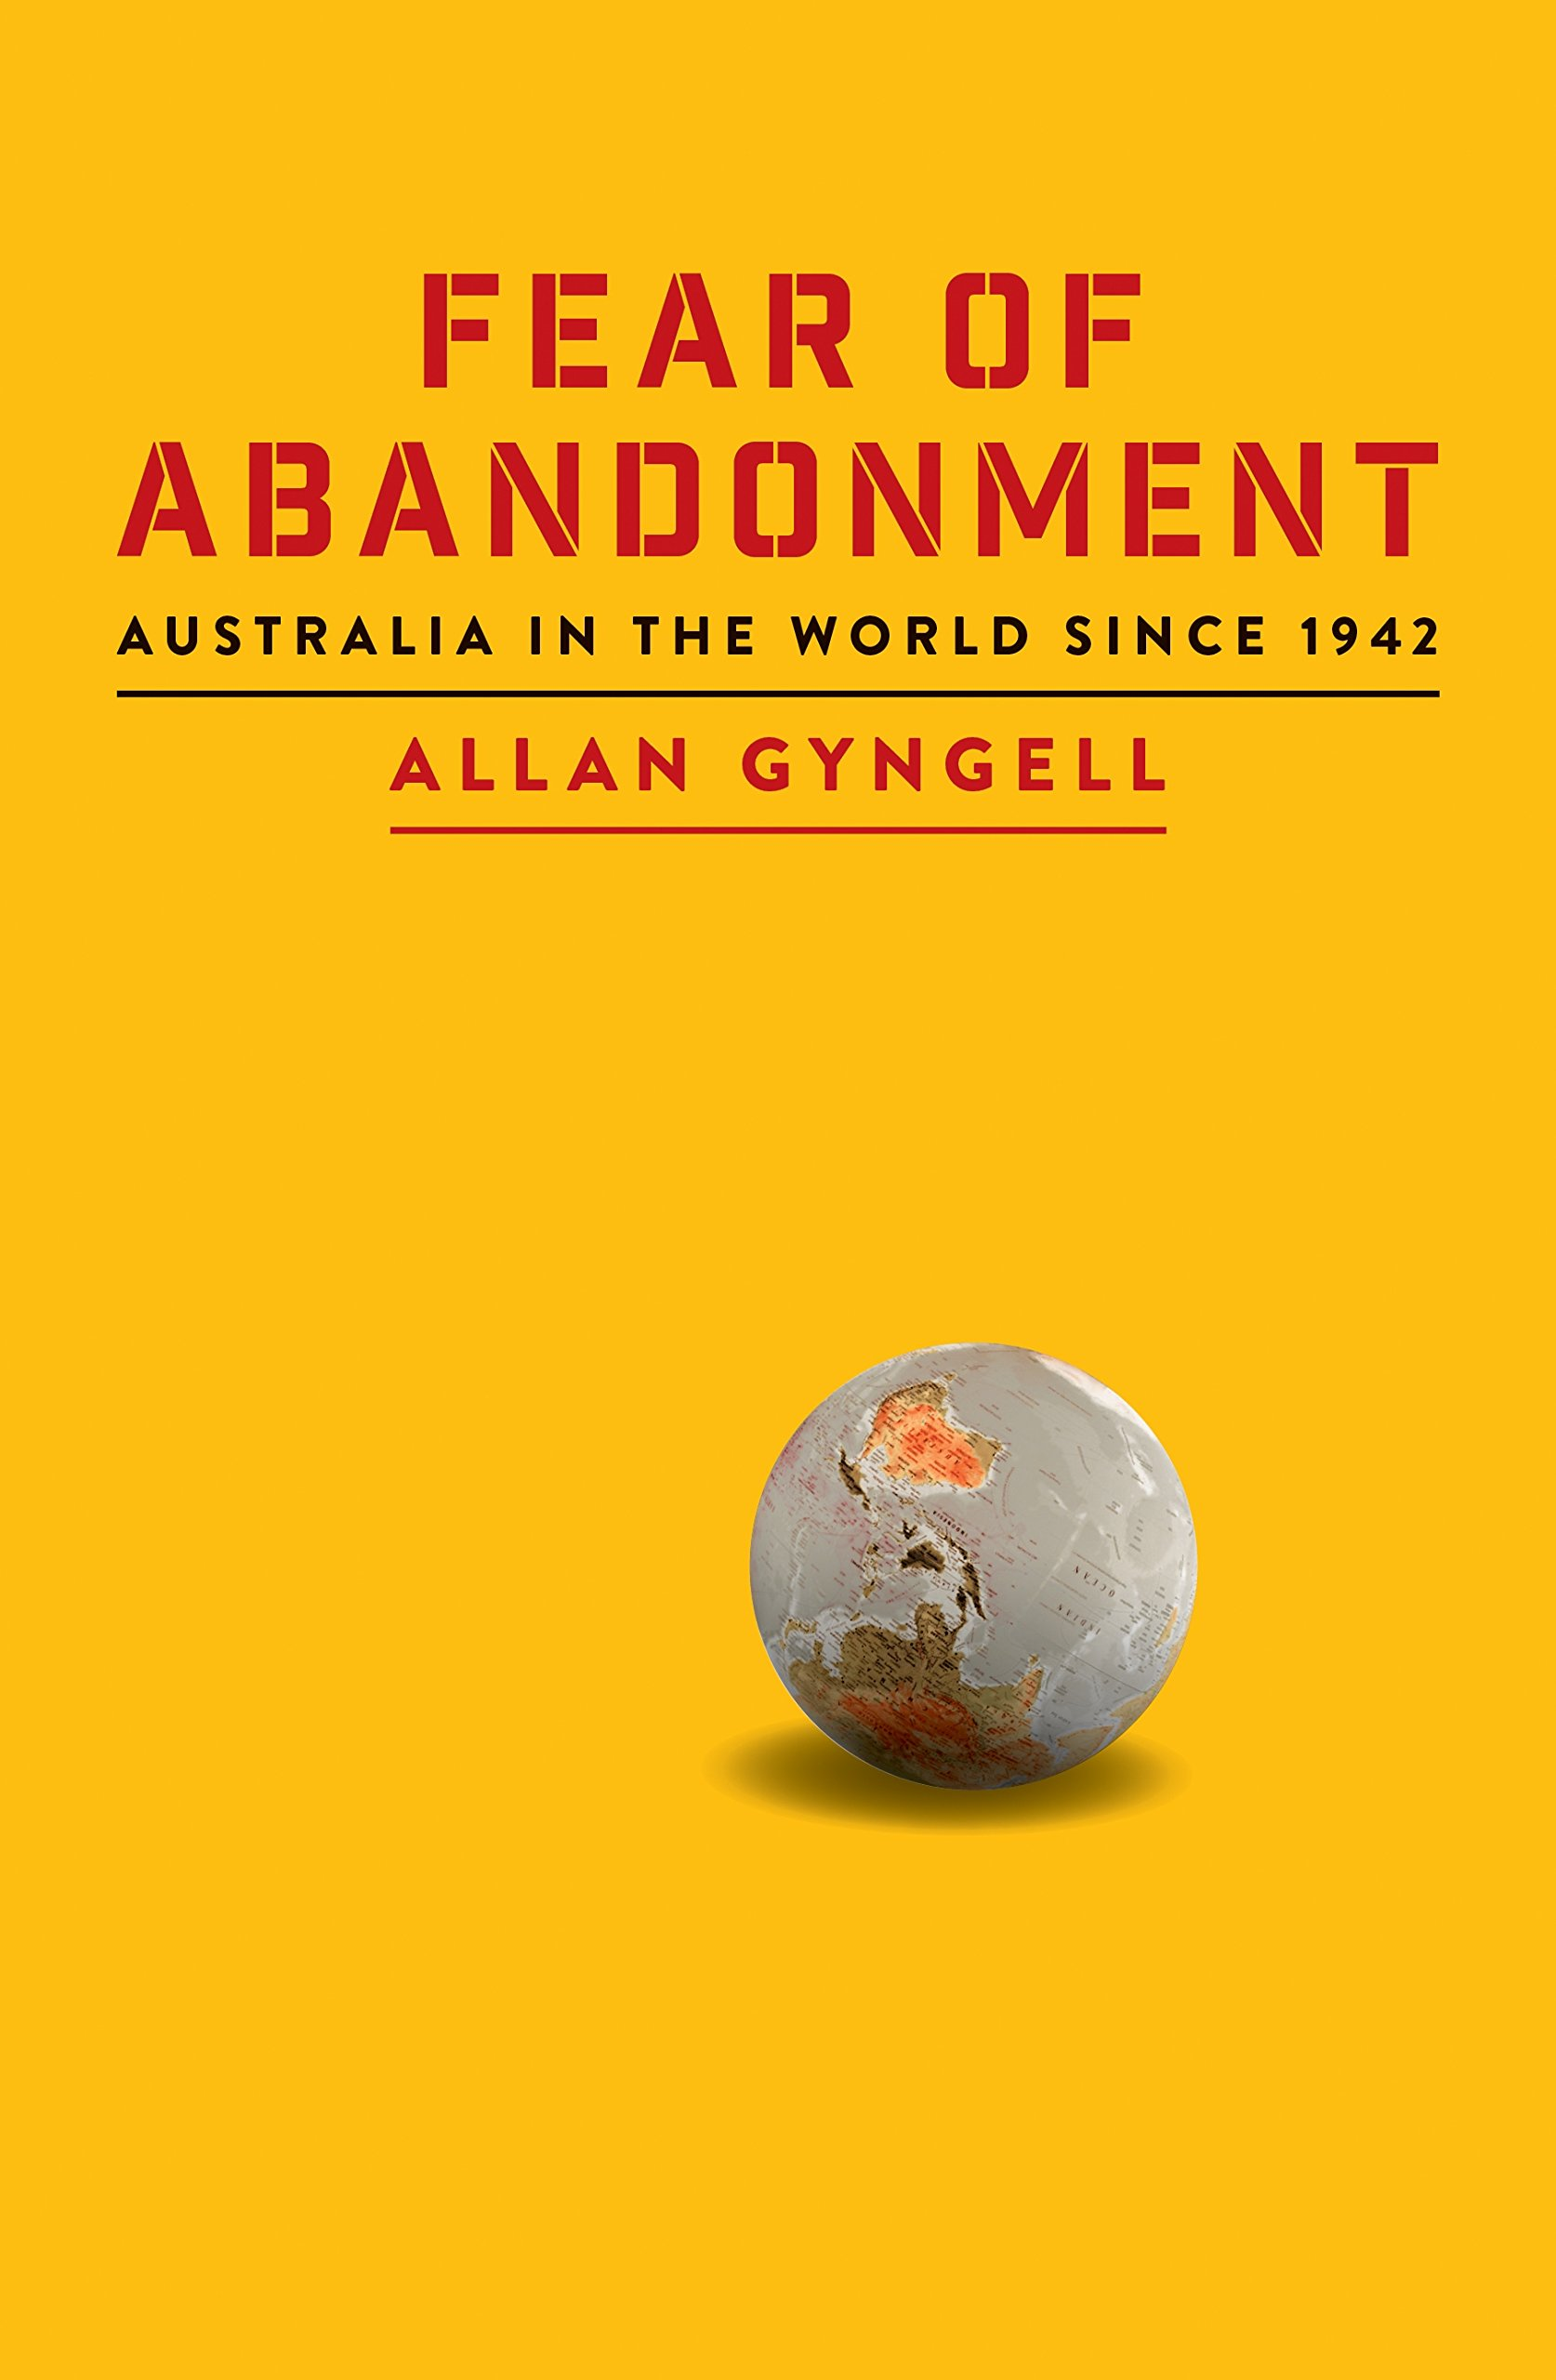 Fear of Abandonment: Australia in the World since 1942 ePub fb2 book